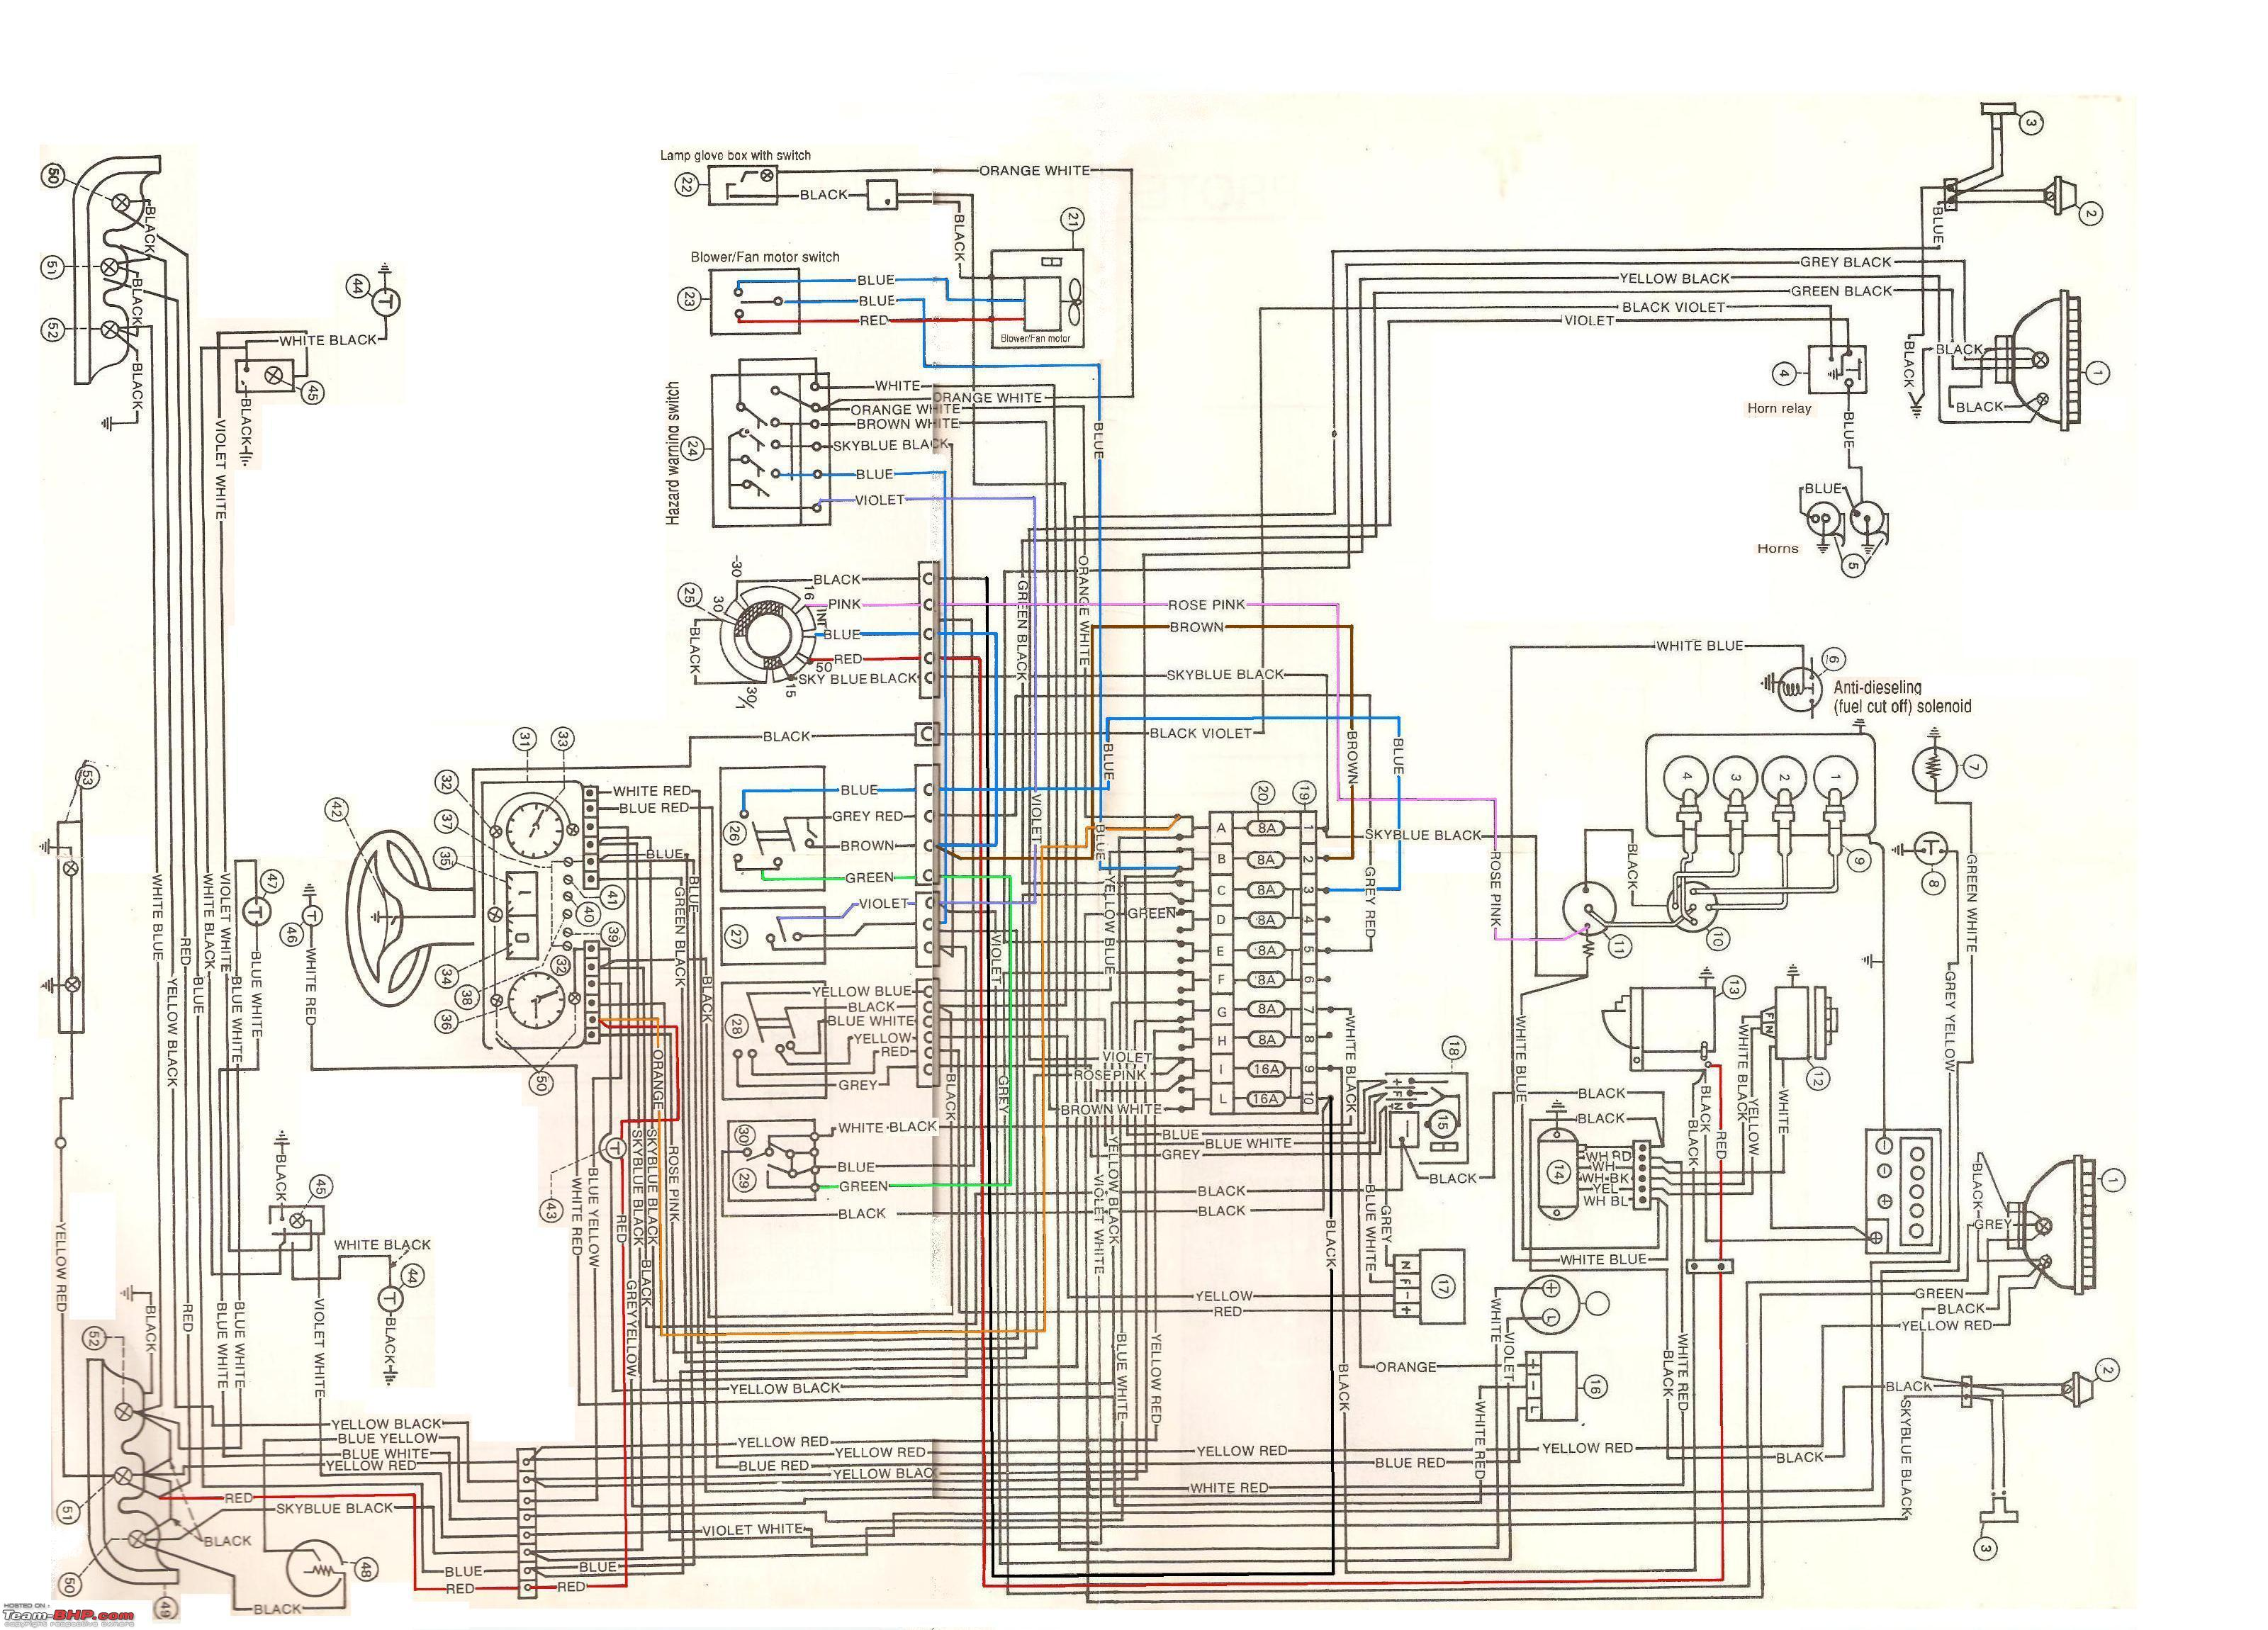 Suzuki Alto Engine Wiring Diagram Modern Design Of Harness Ecu Data Rh 42 Hrc Solarhandel De